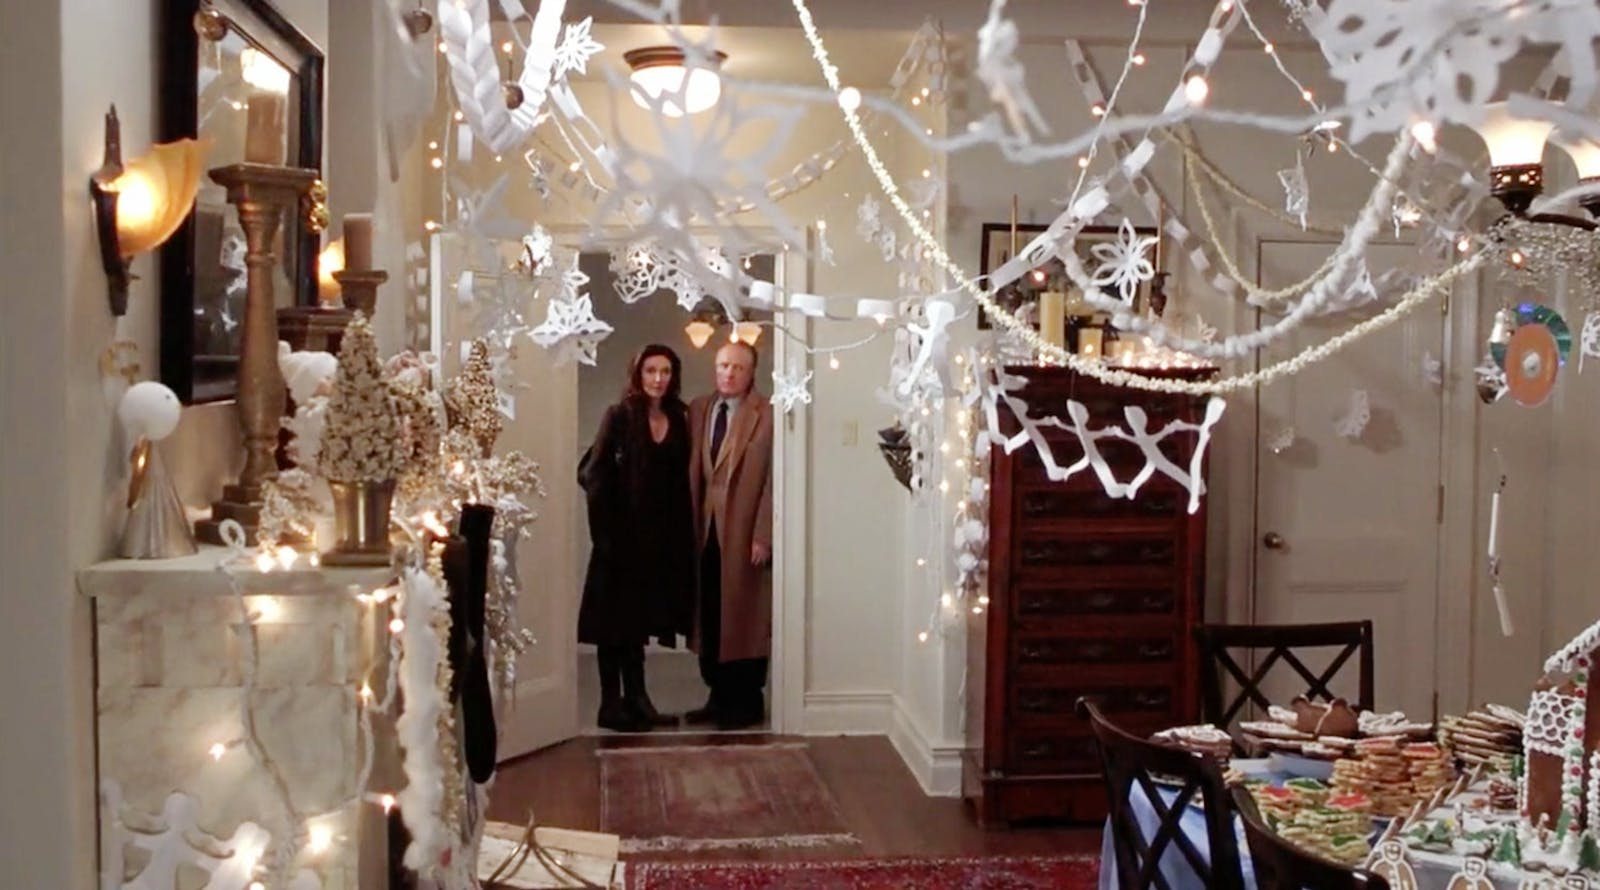 Man and woman looking into a room decorated in Christmas bunting, a famous scene in movie Elf